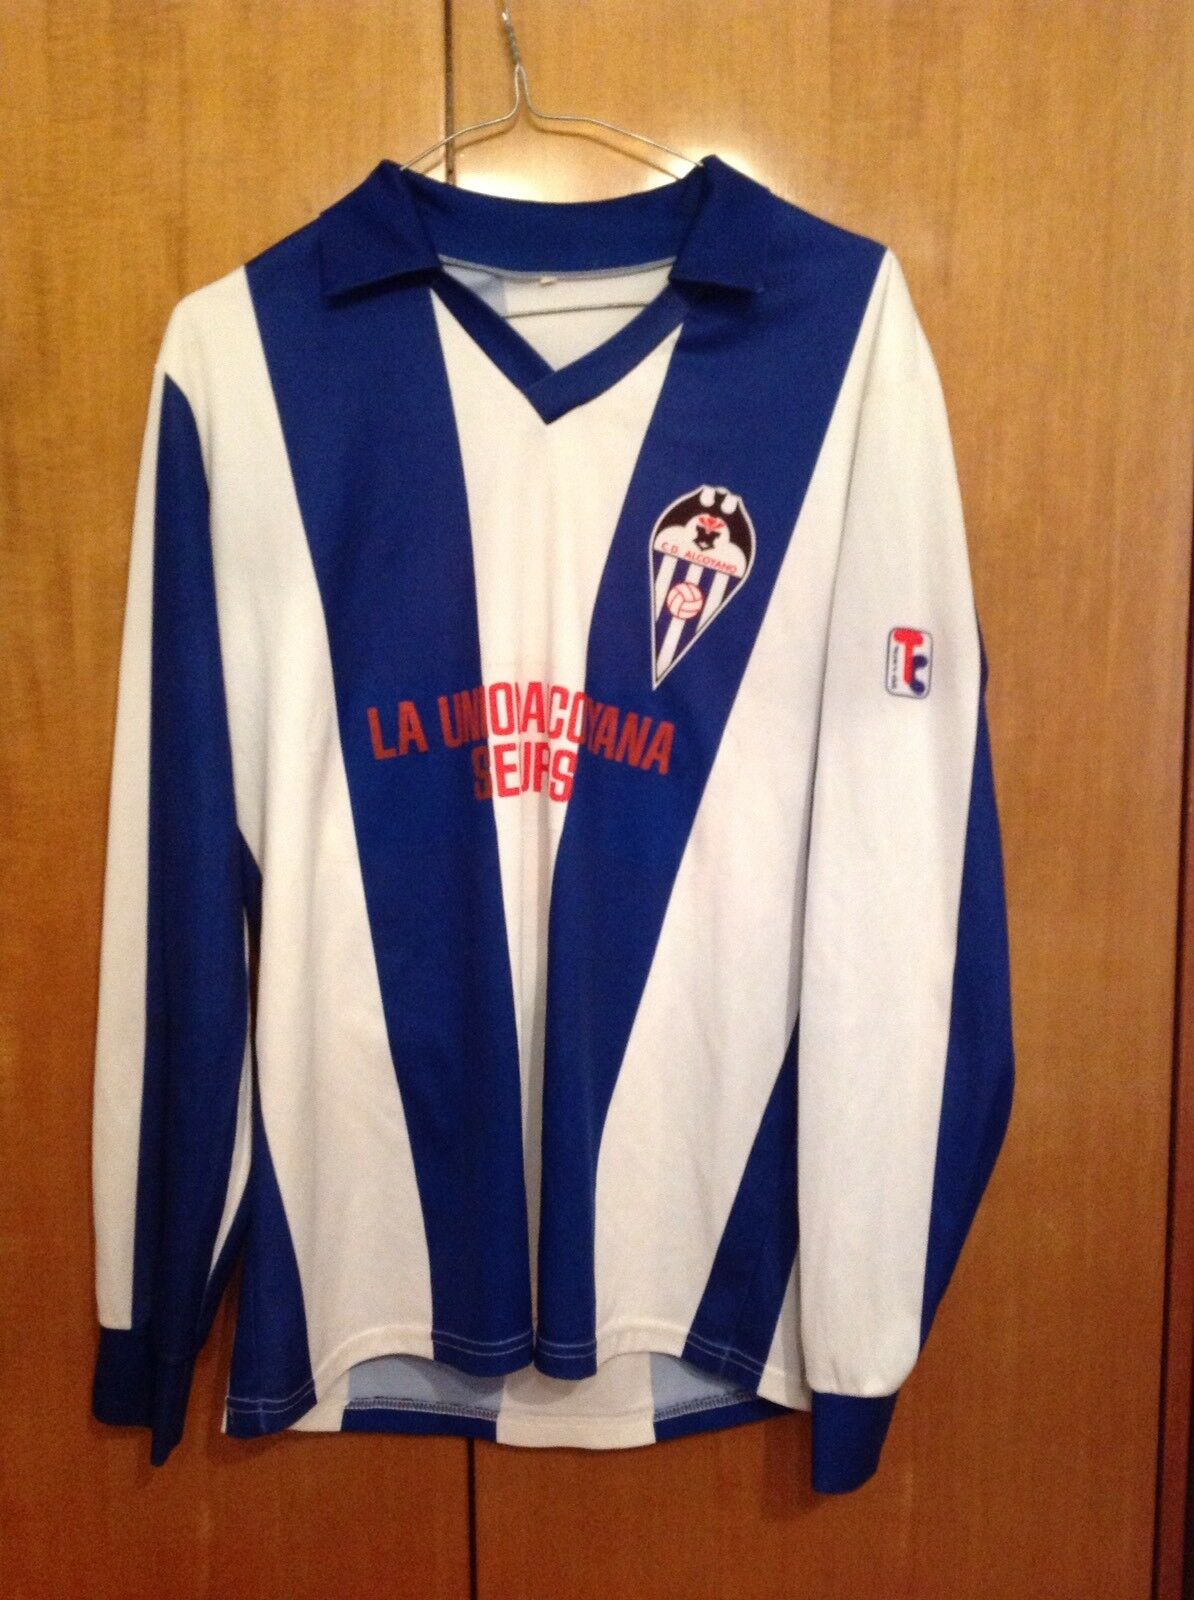 Camiseta futbol alcoyano 100% original match worn player issue football retro